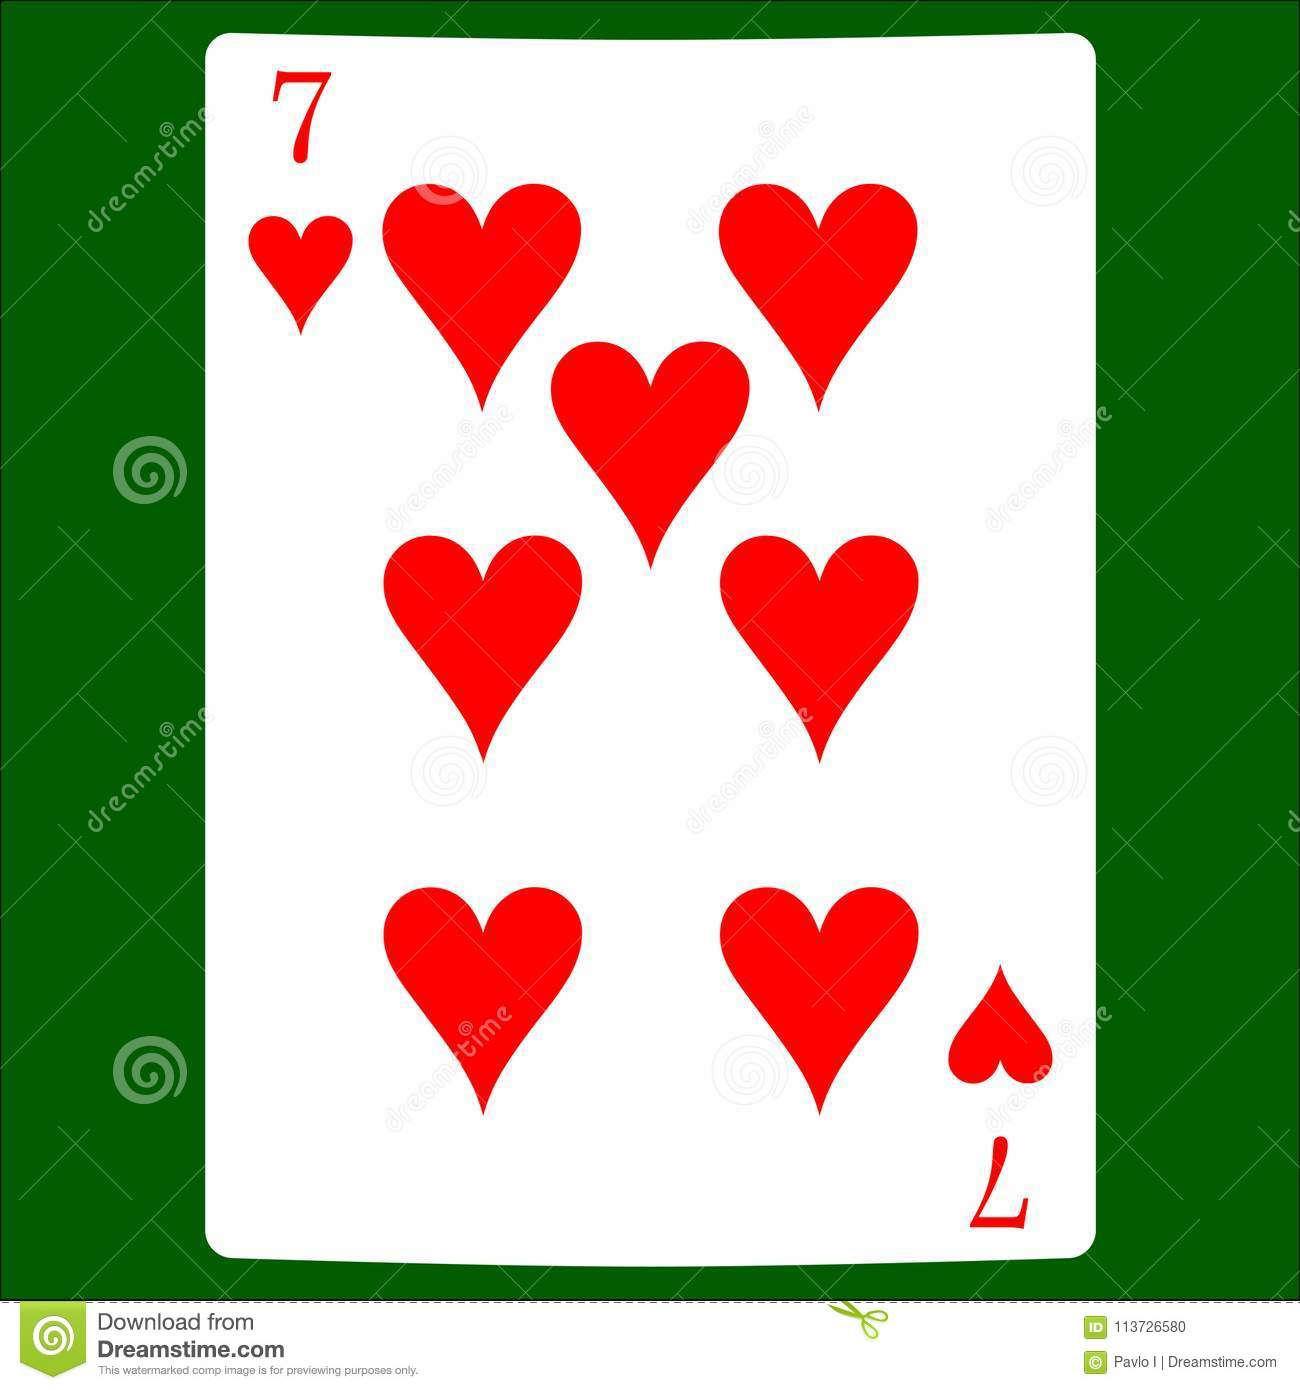 Seven Hearts. Card Suit Icon Vector, Playing Cards Symbols ...